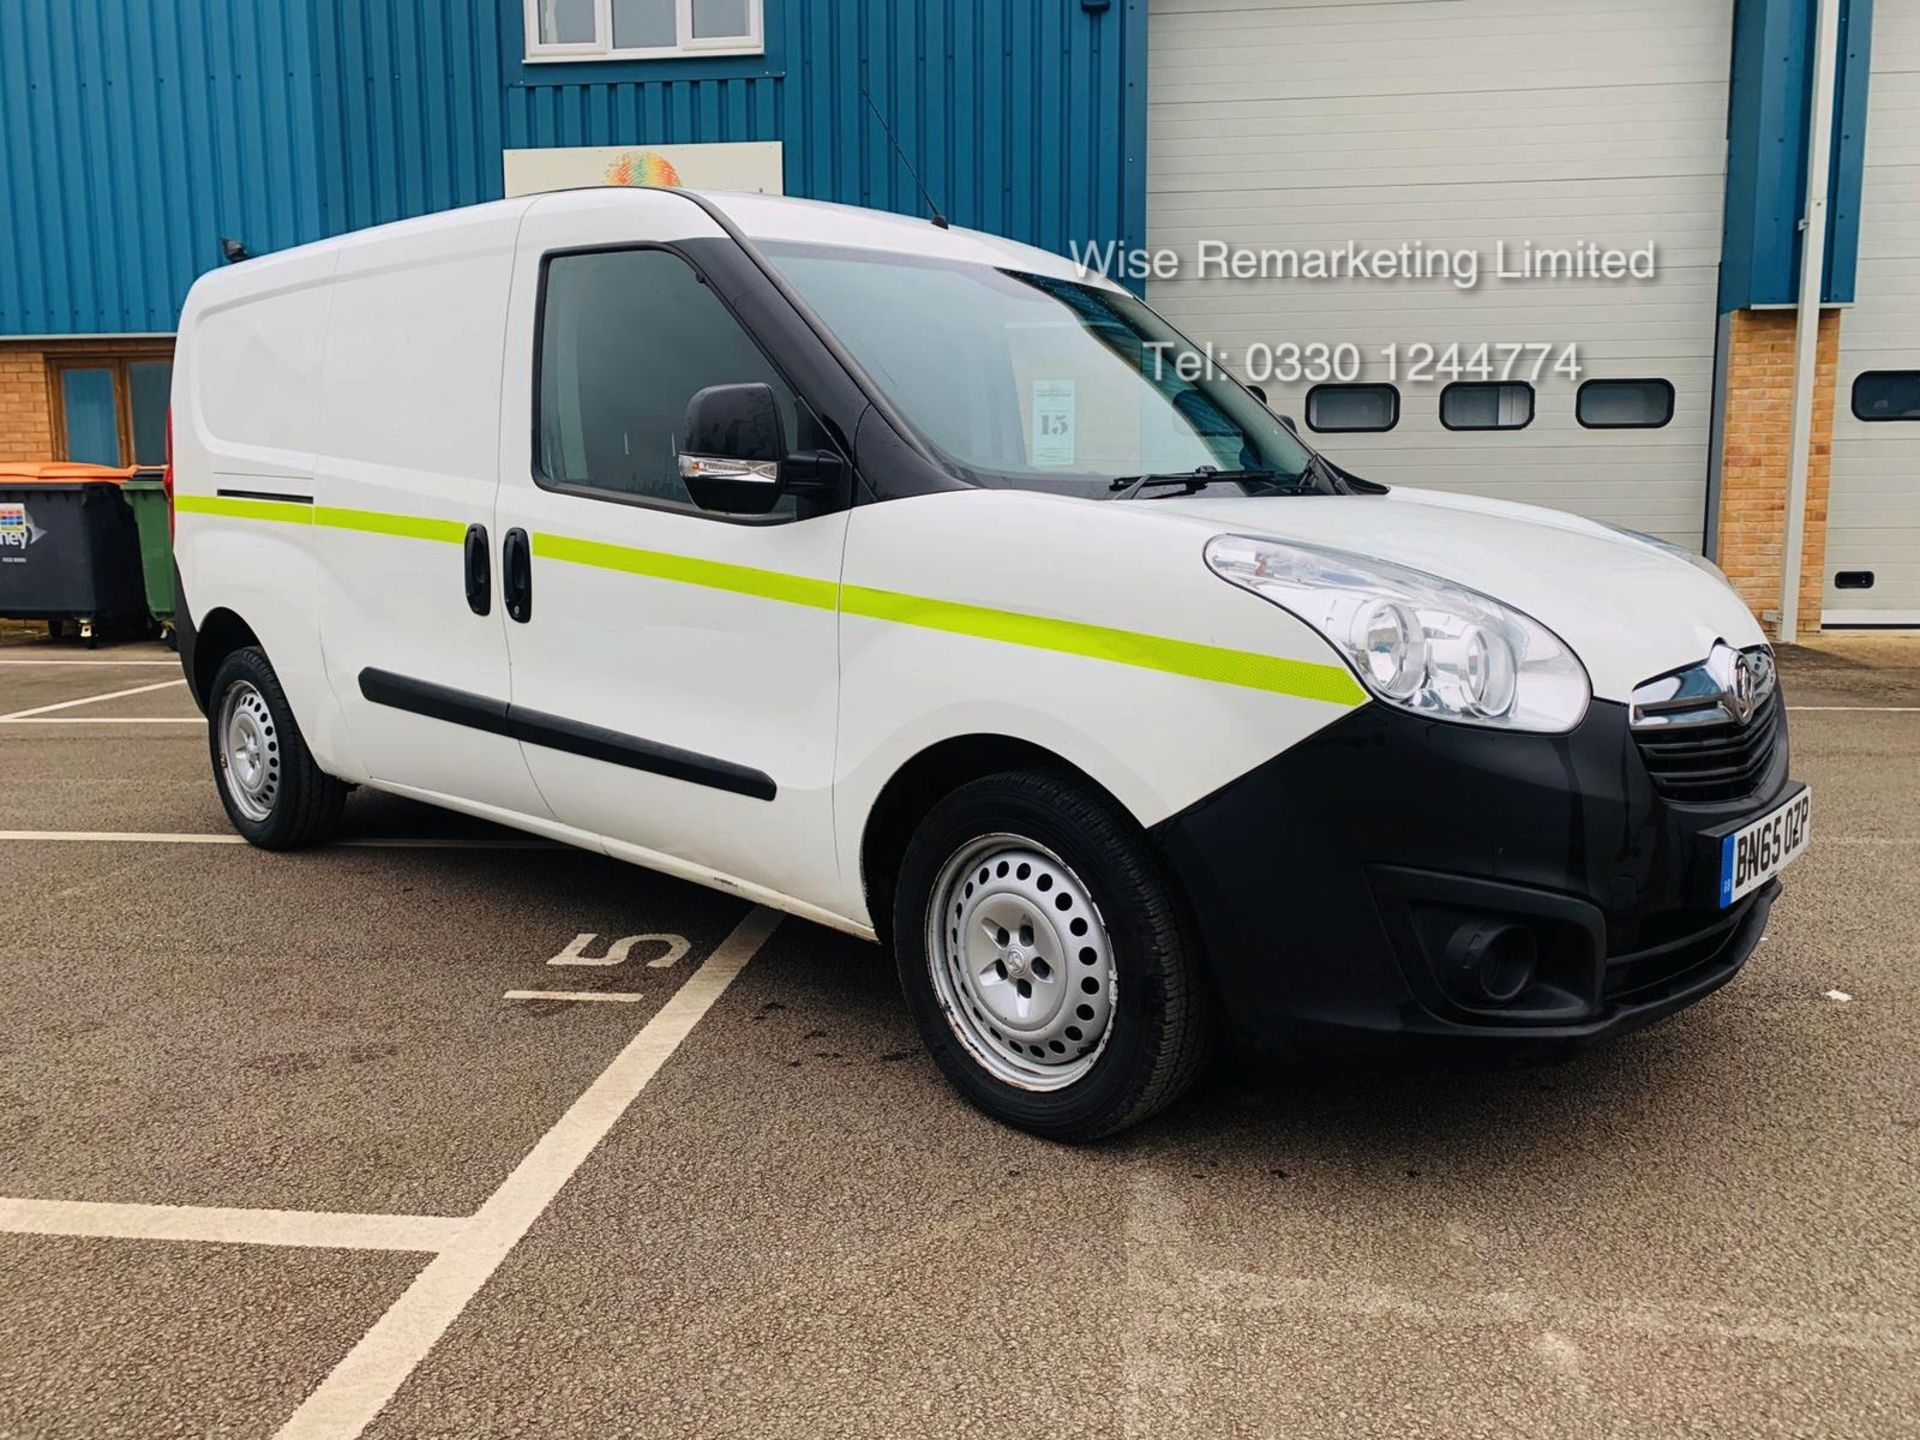 Lot 9a - Vauxhall Combo 2300 1.6 CDTI Long - 2016 Model - 1 Keeper From New - Twin Doors - Ply Lined